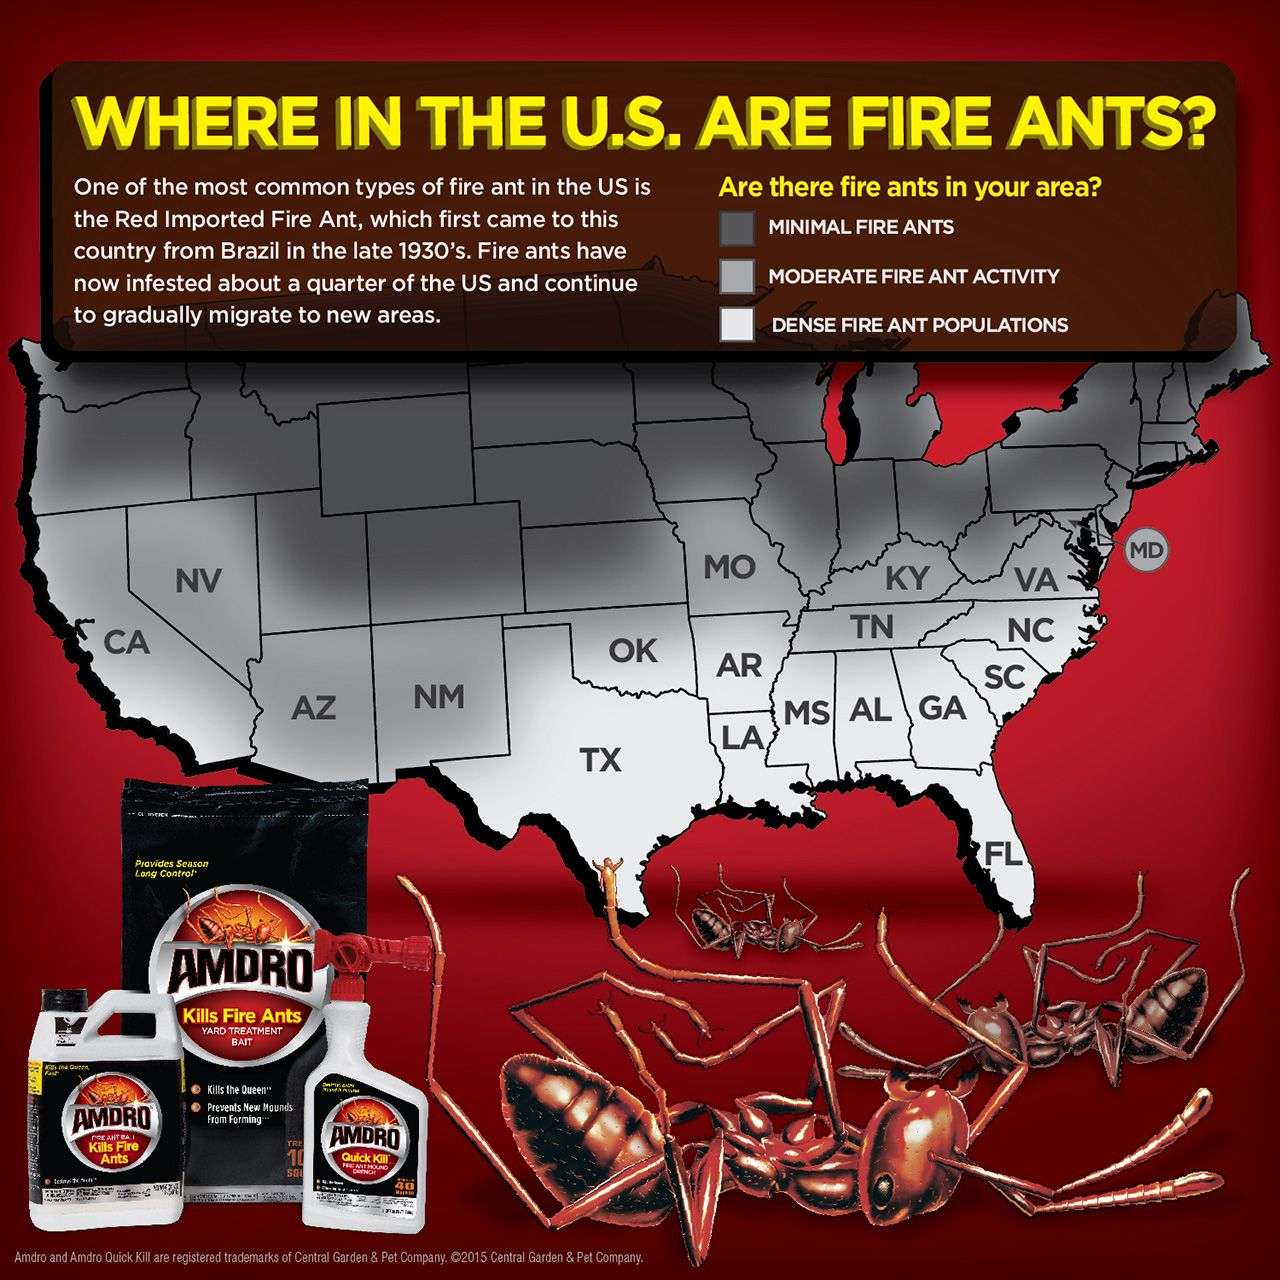 Fire Ant Map Yard Fire Ants Ants Map - Map-of-fire-ants-in-us